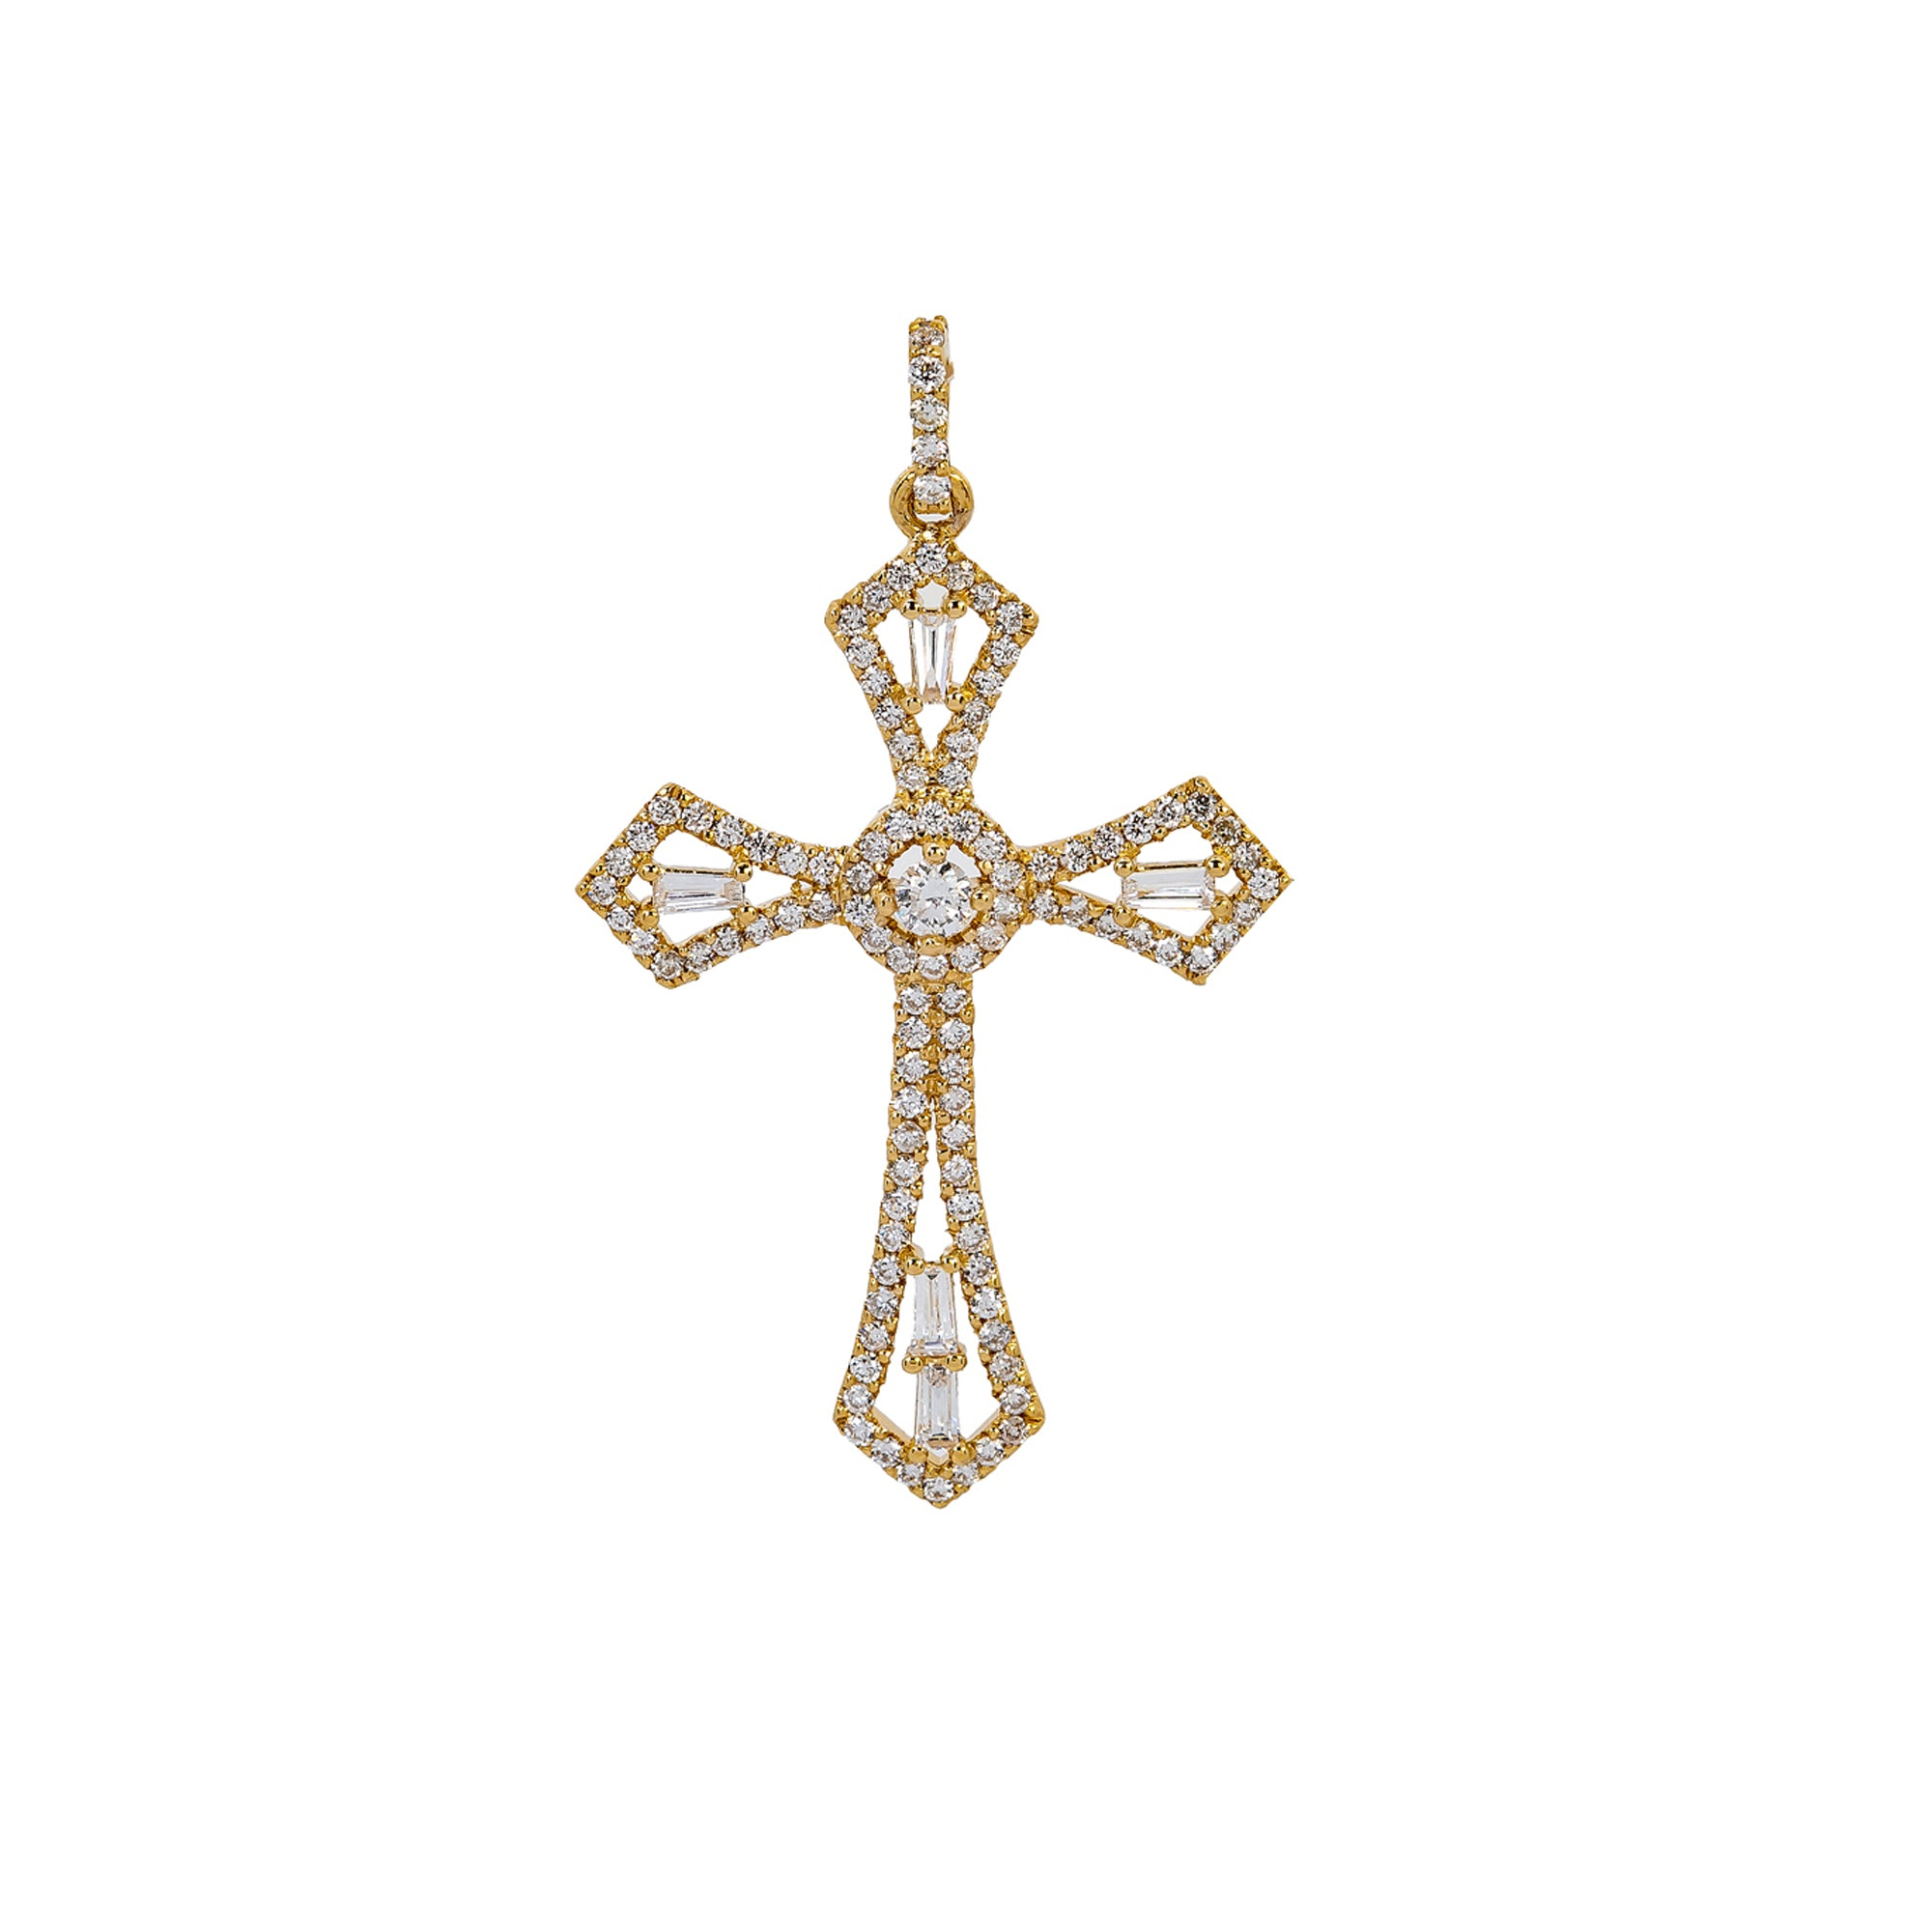 14K Yellow Gold Cross Pendant with 0.62 CT Diamond